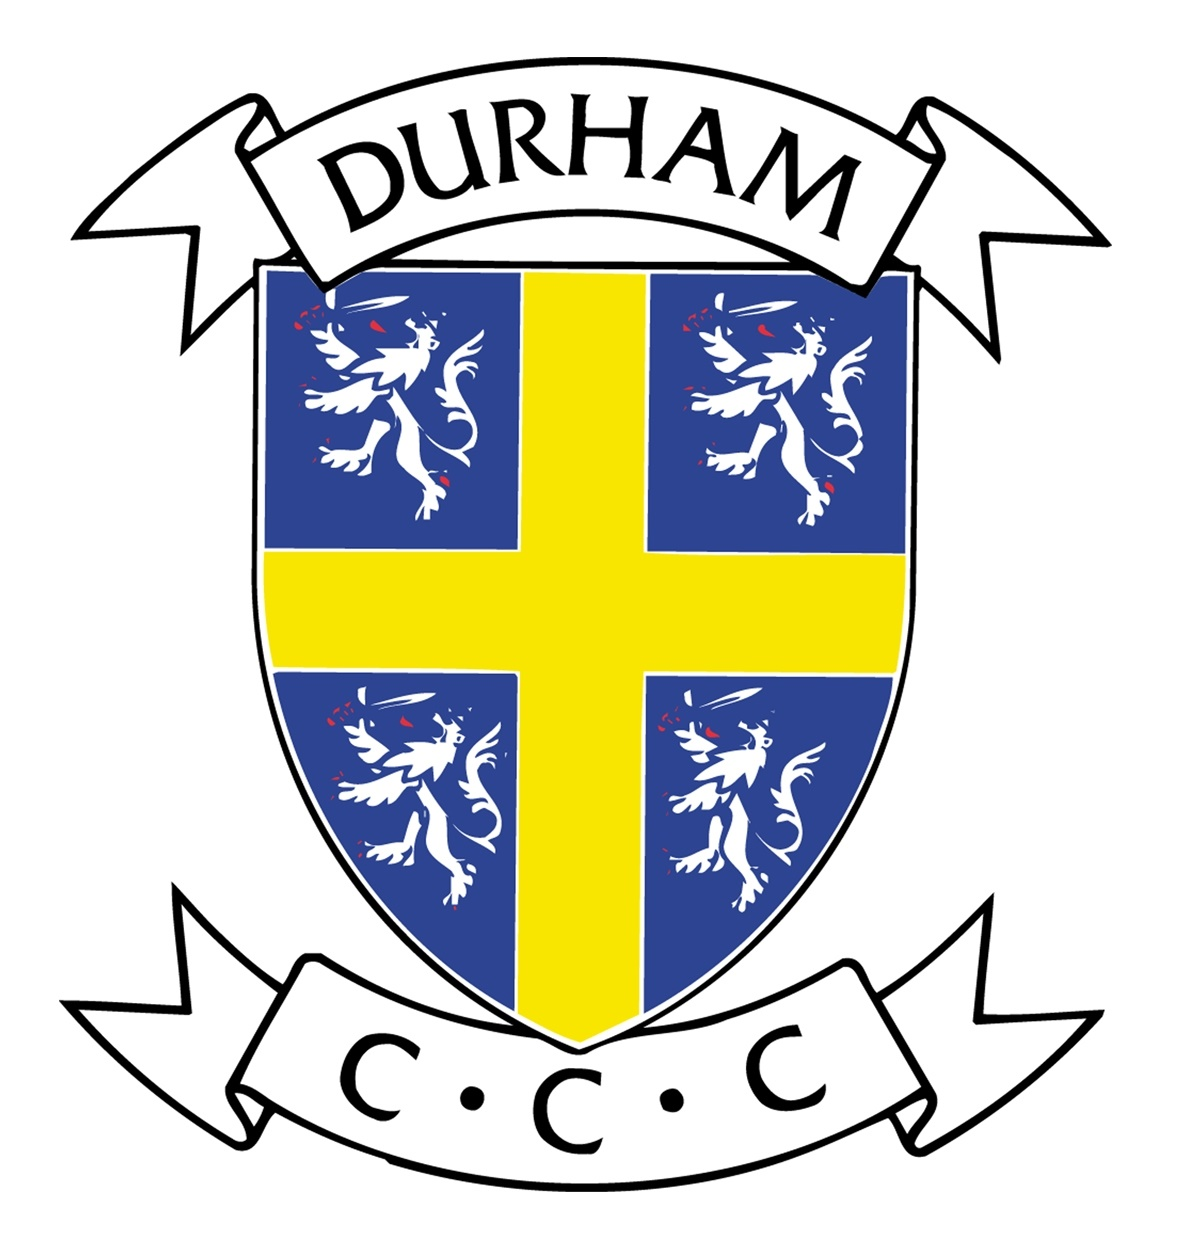 Breakfast at The Secret Tower, sponsored by Durham County Cricket Club